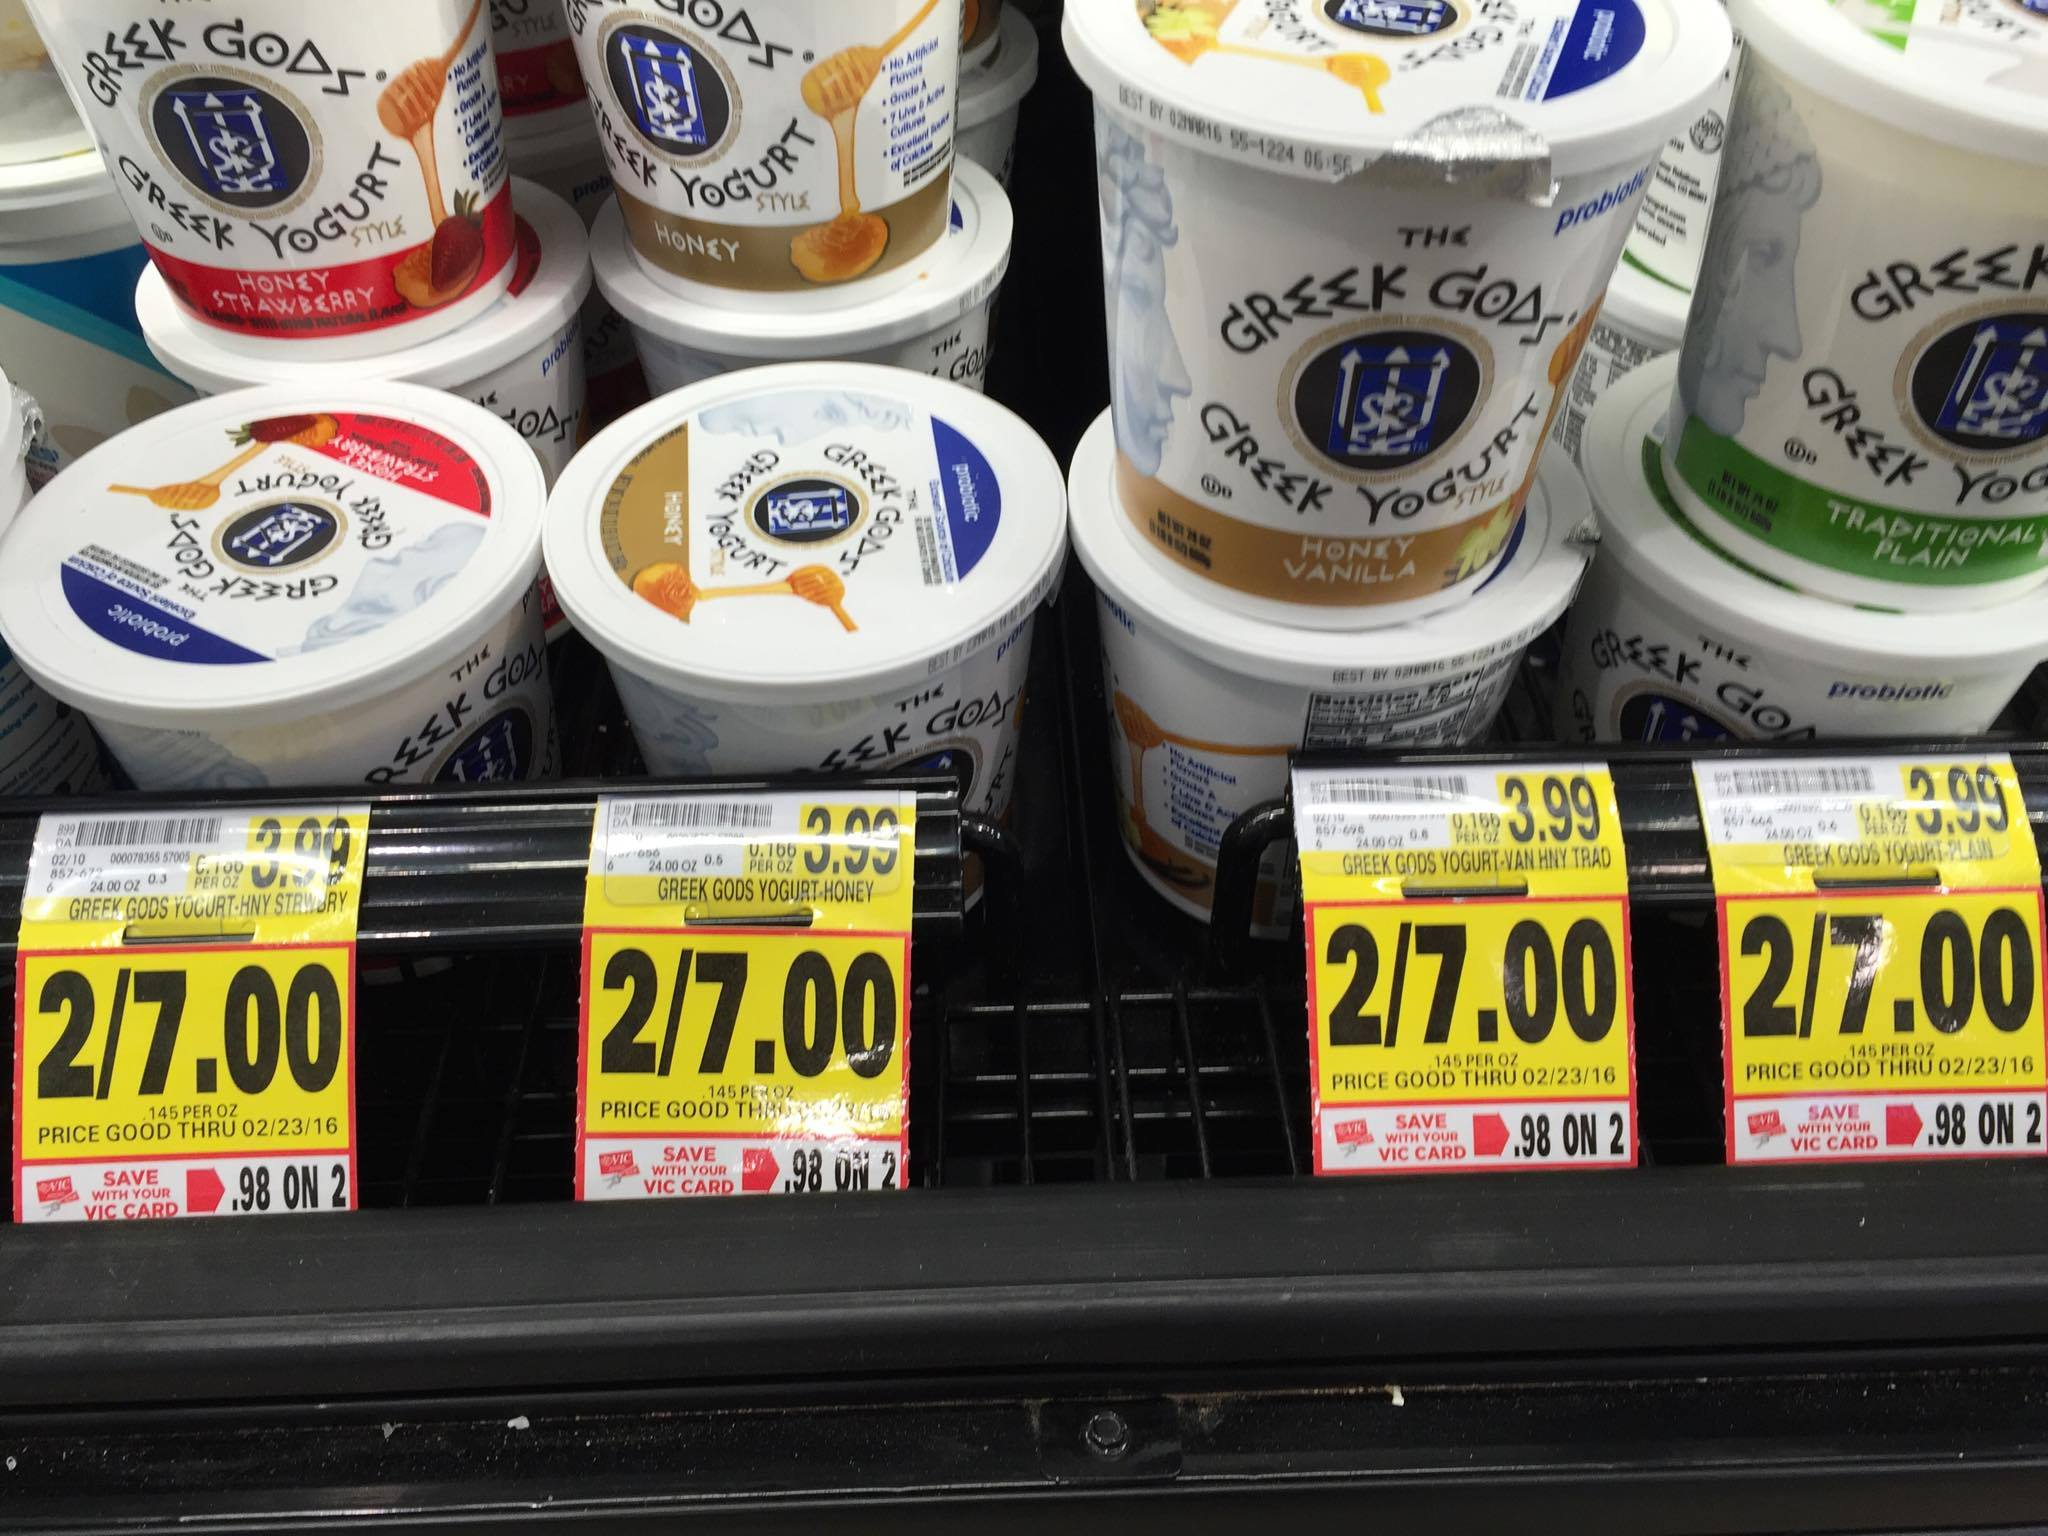 Greek god yogurt coupons